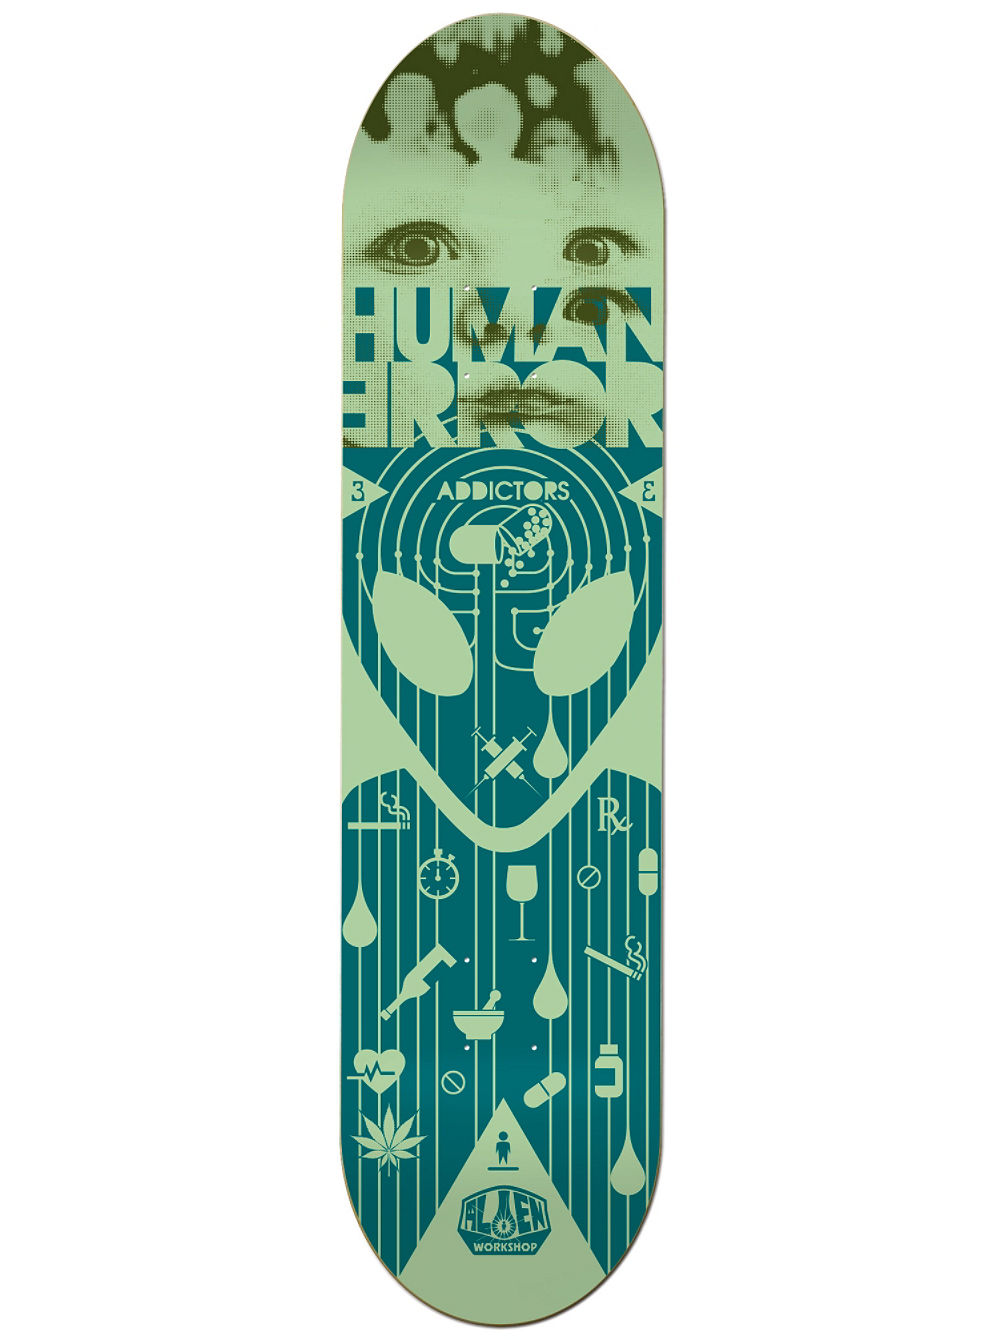 alien-workshop-human-error-addictors-825-skateboard